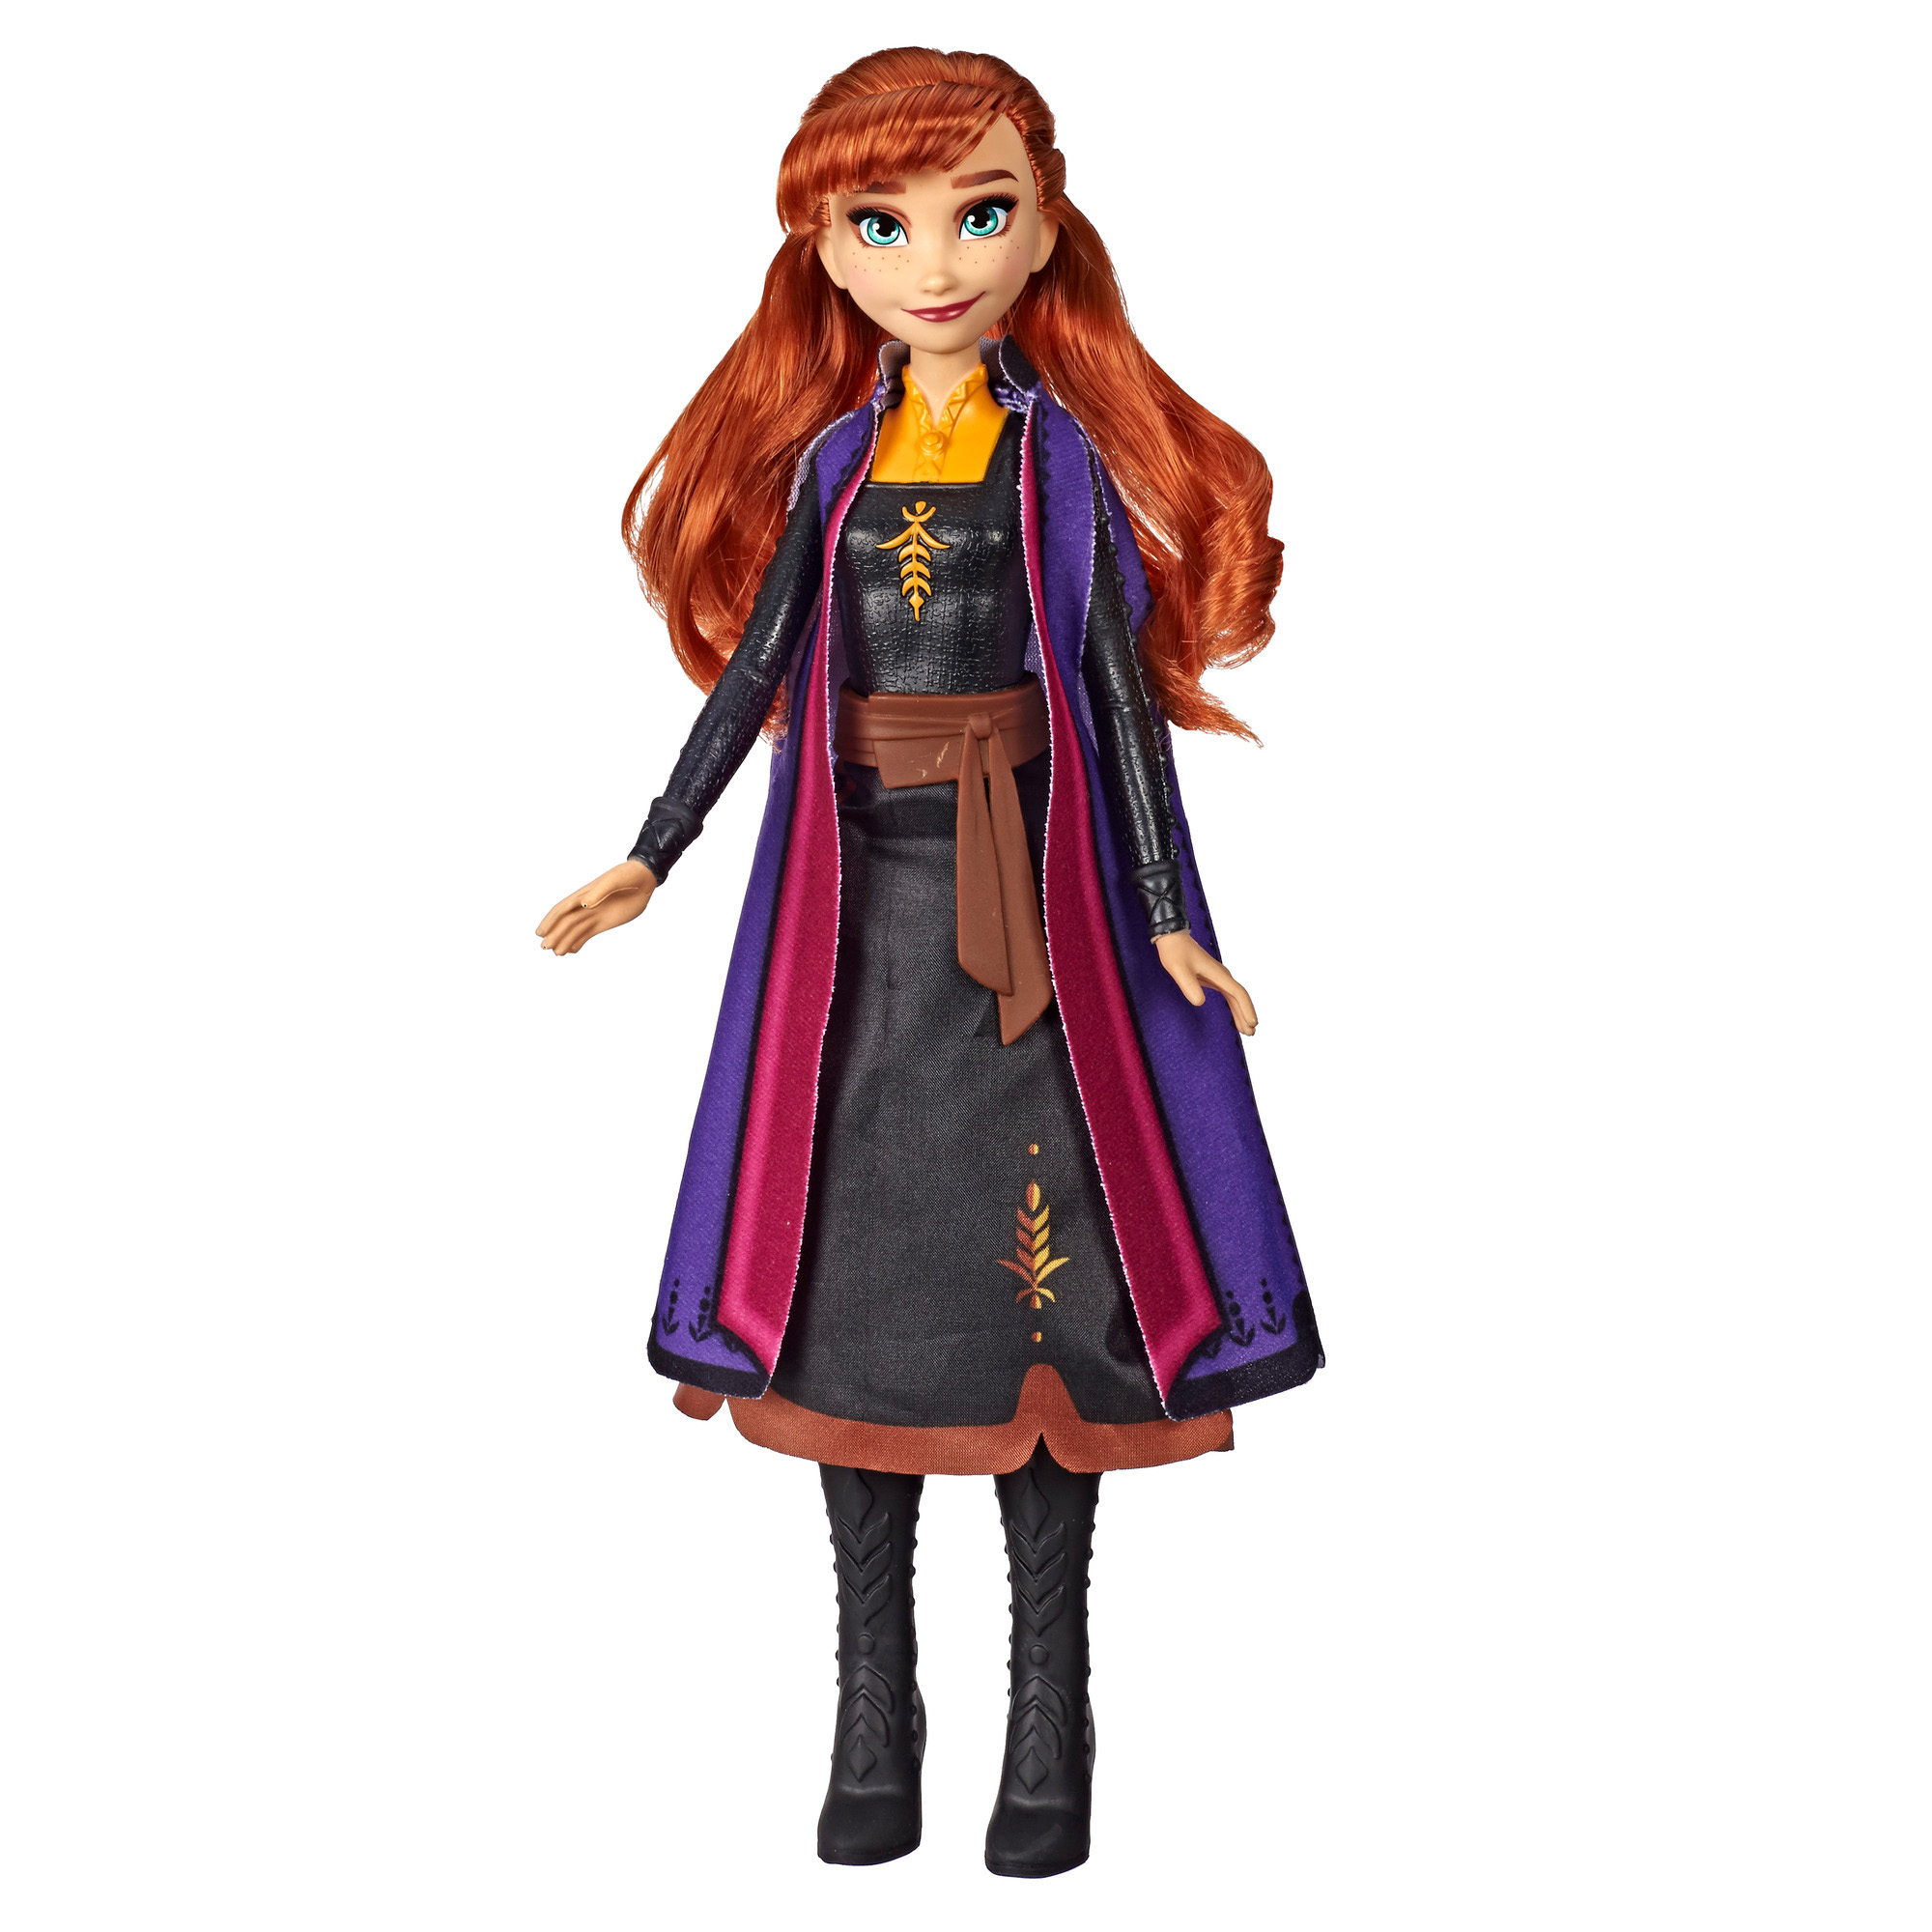 Anna Autumn Swirling Adventure Fashion Doll